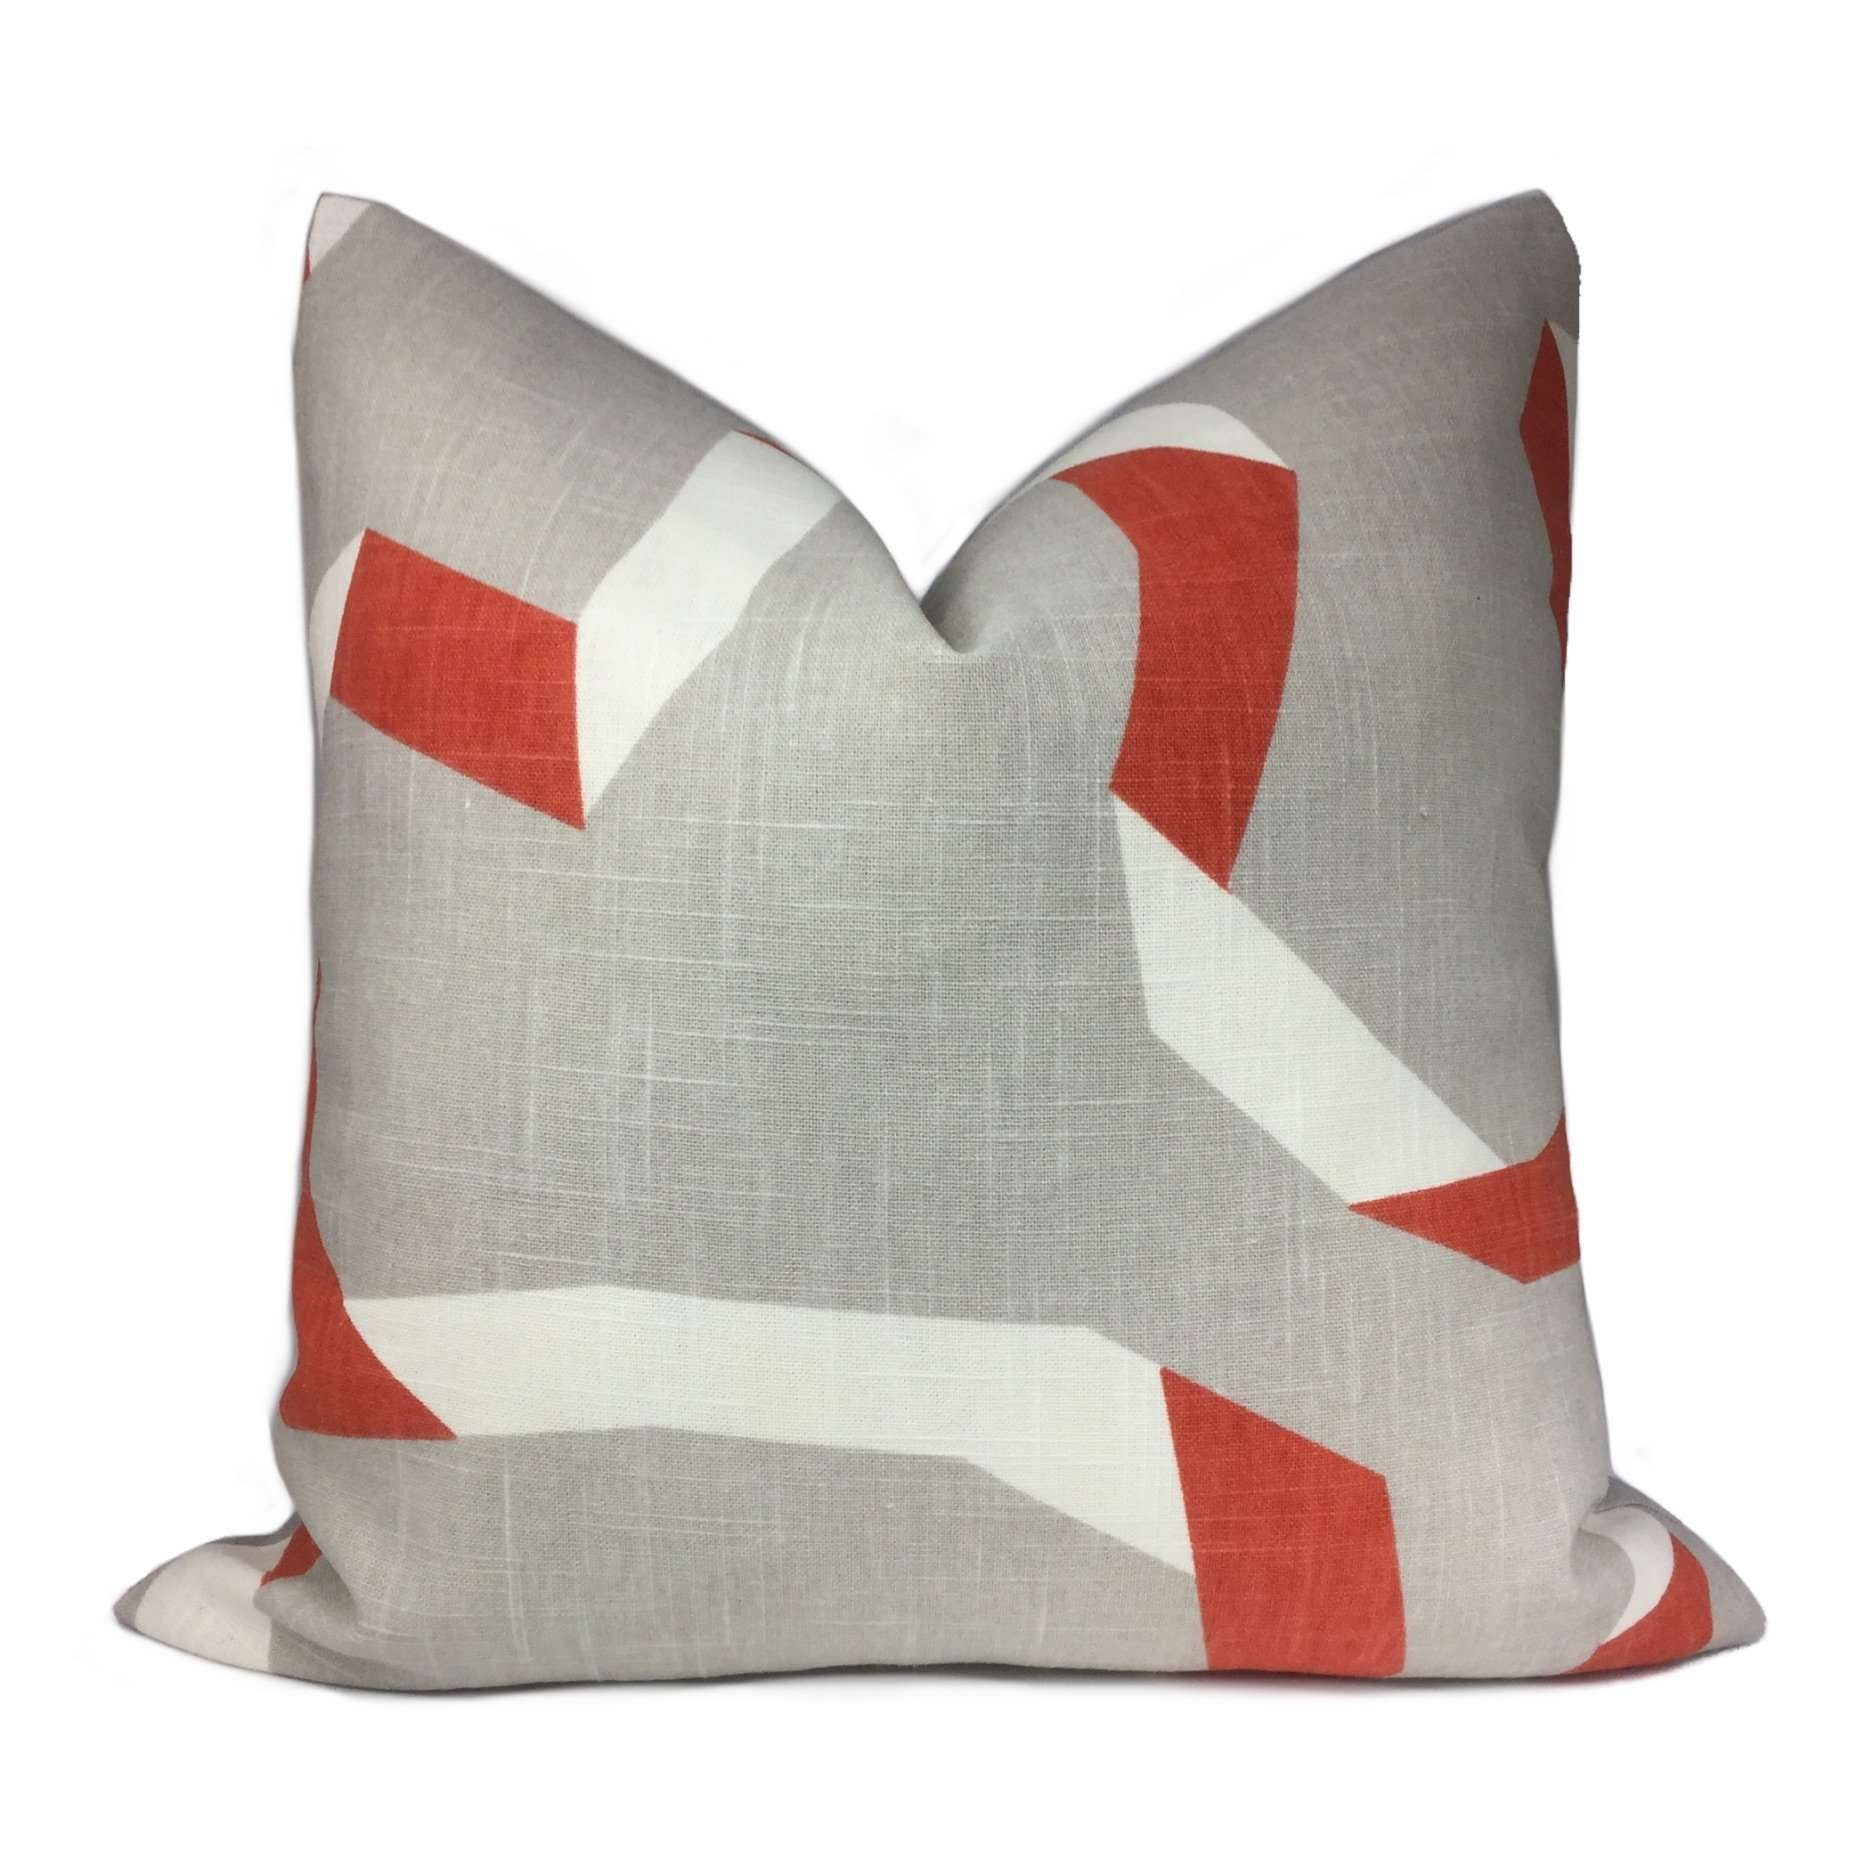 Robert Allen Vento Ribbon Gray Orange White Pillow Cover